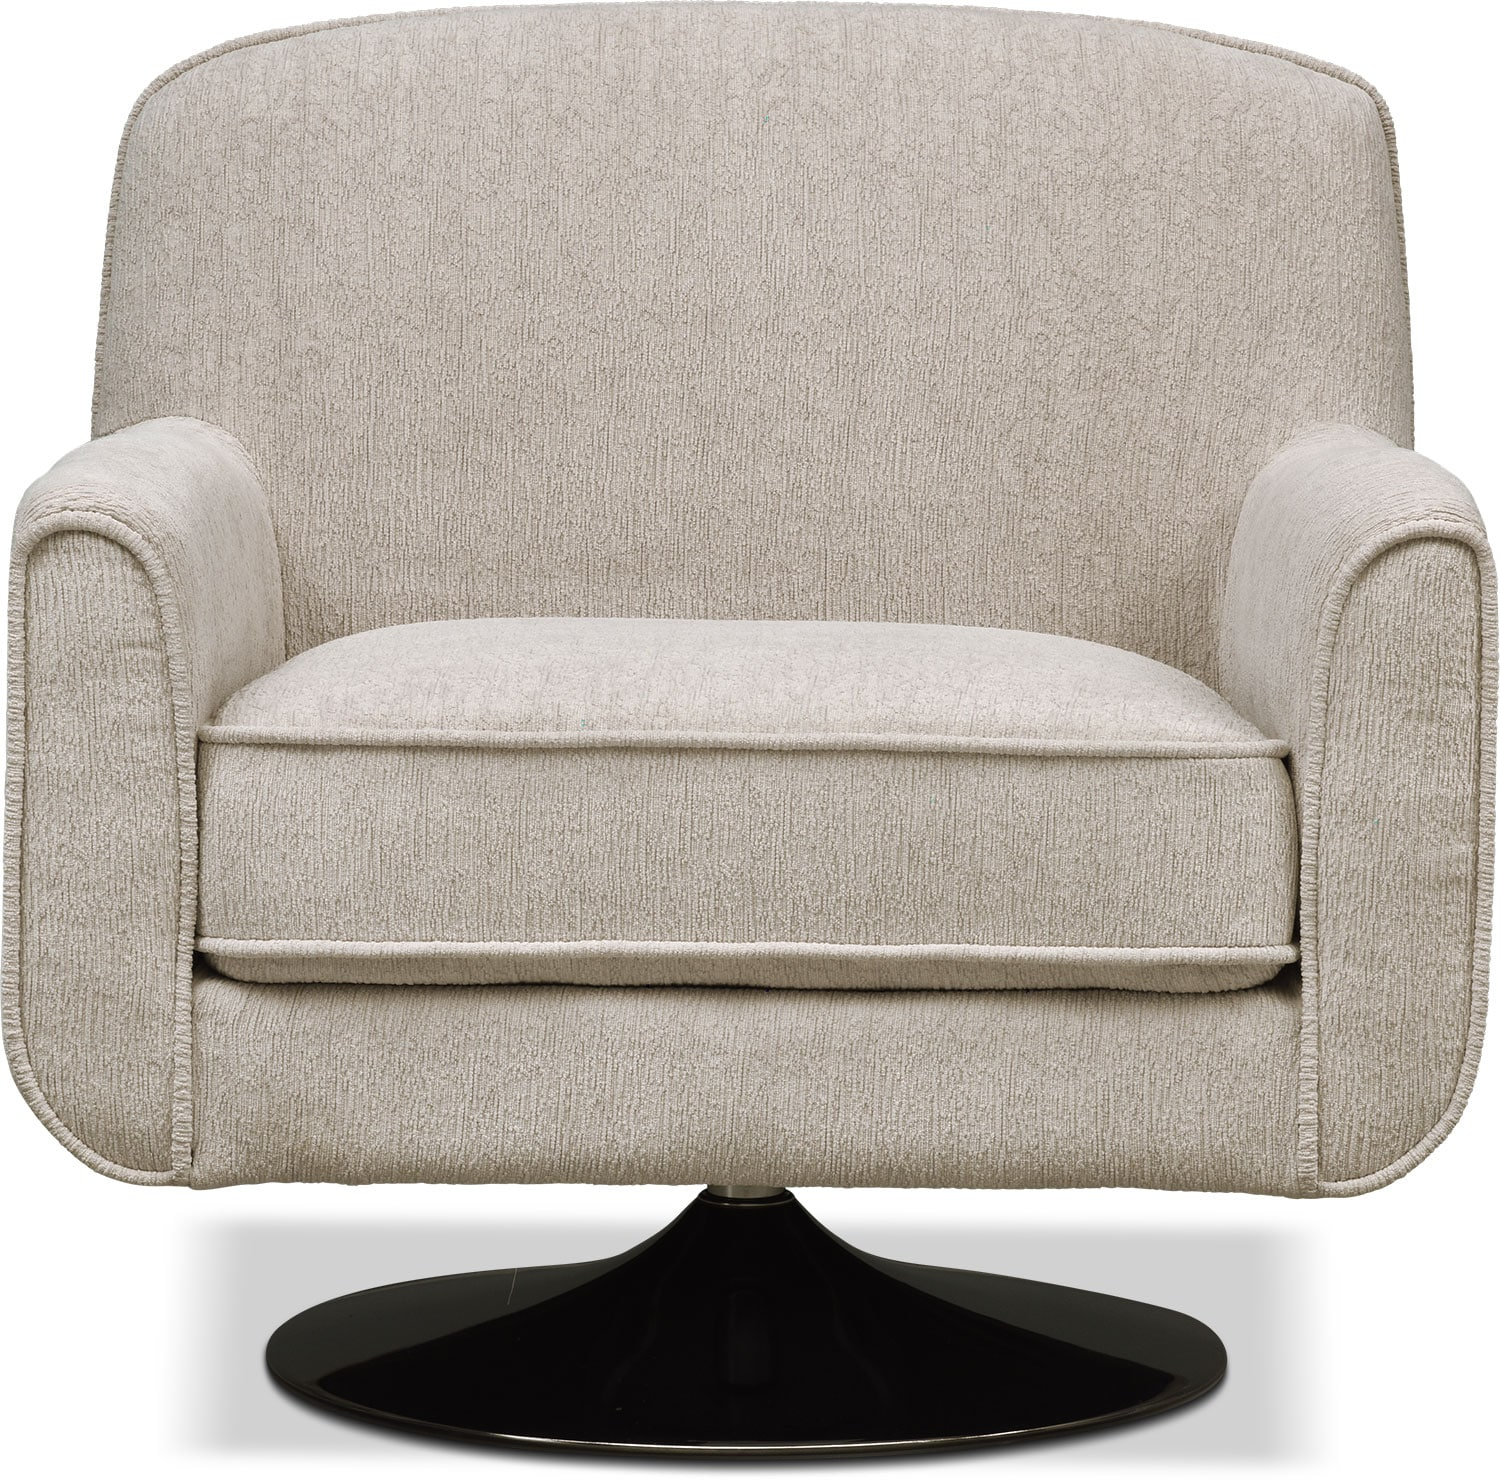 swivel chair near me racing seat office allyn gray american signature furniture click to change image